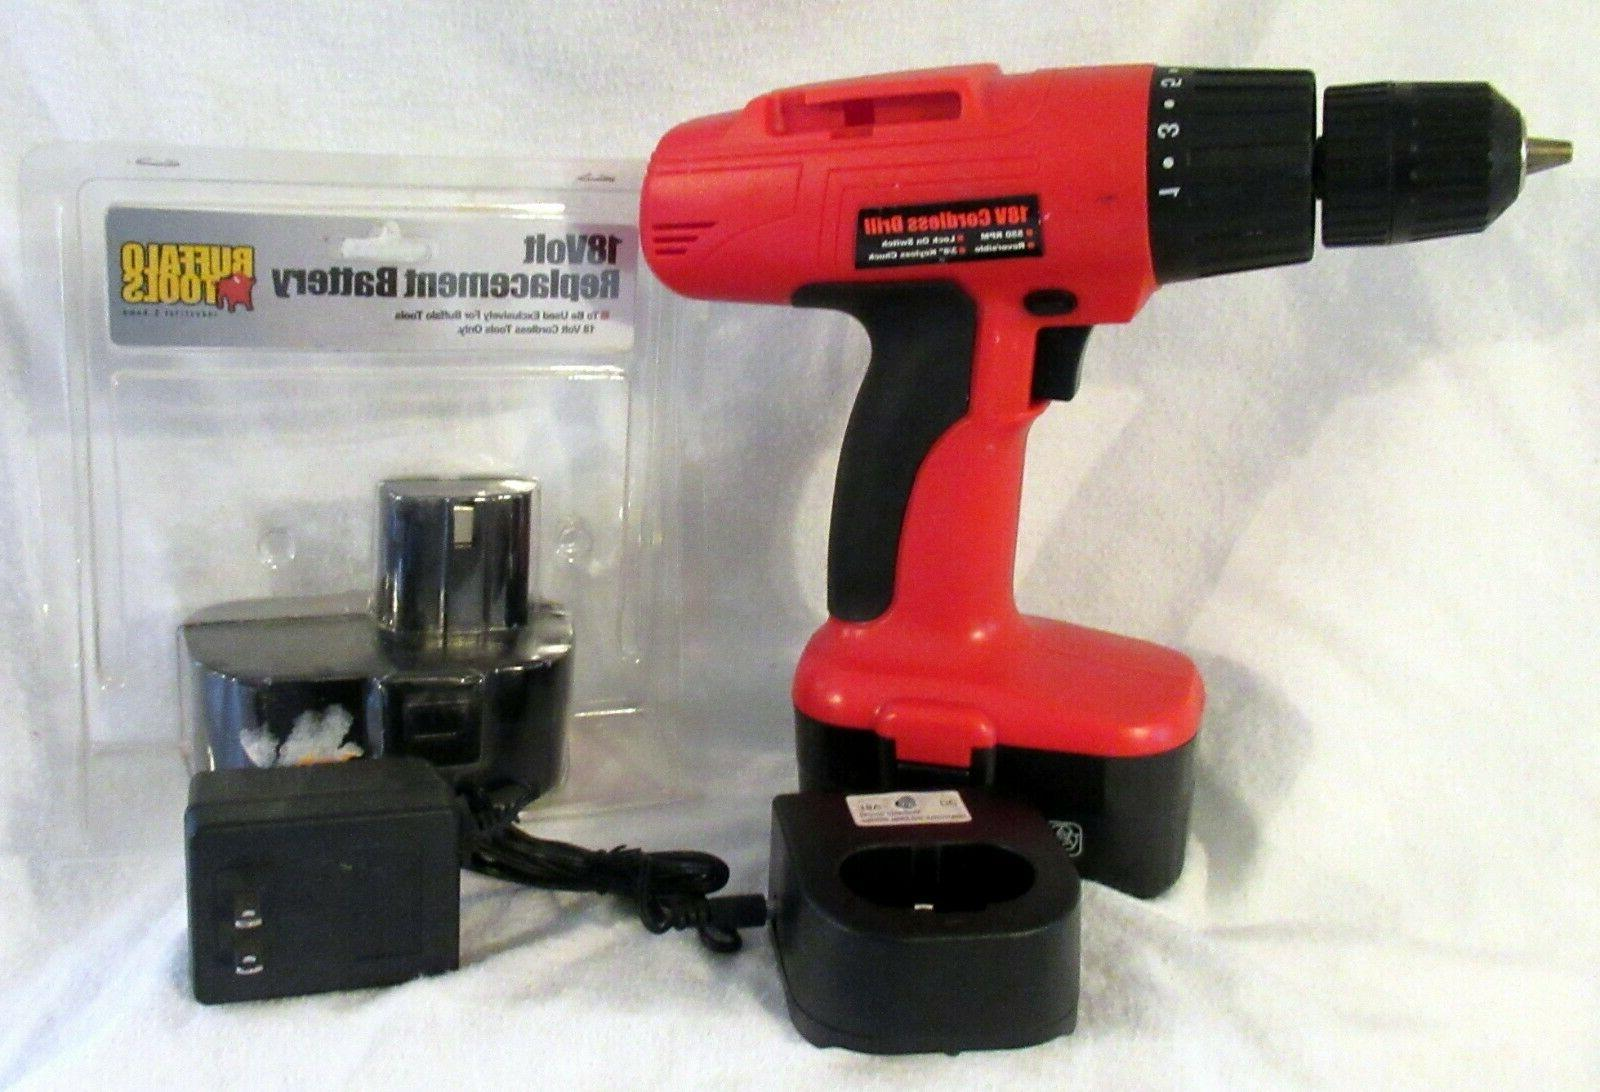 18v cordless drill with 2 batteries